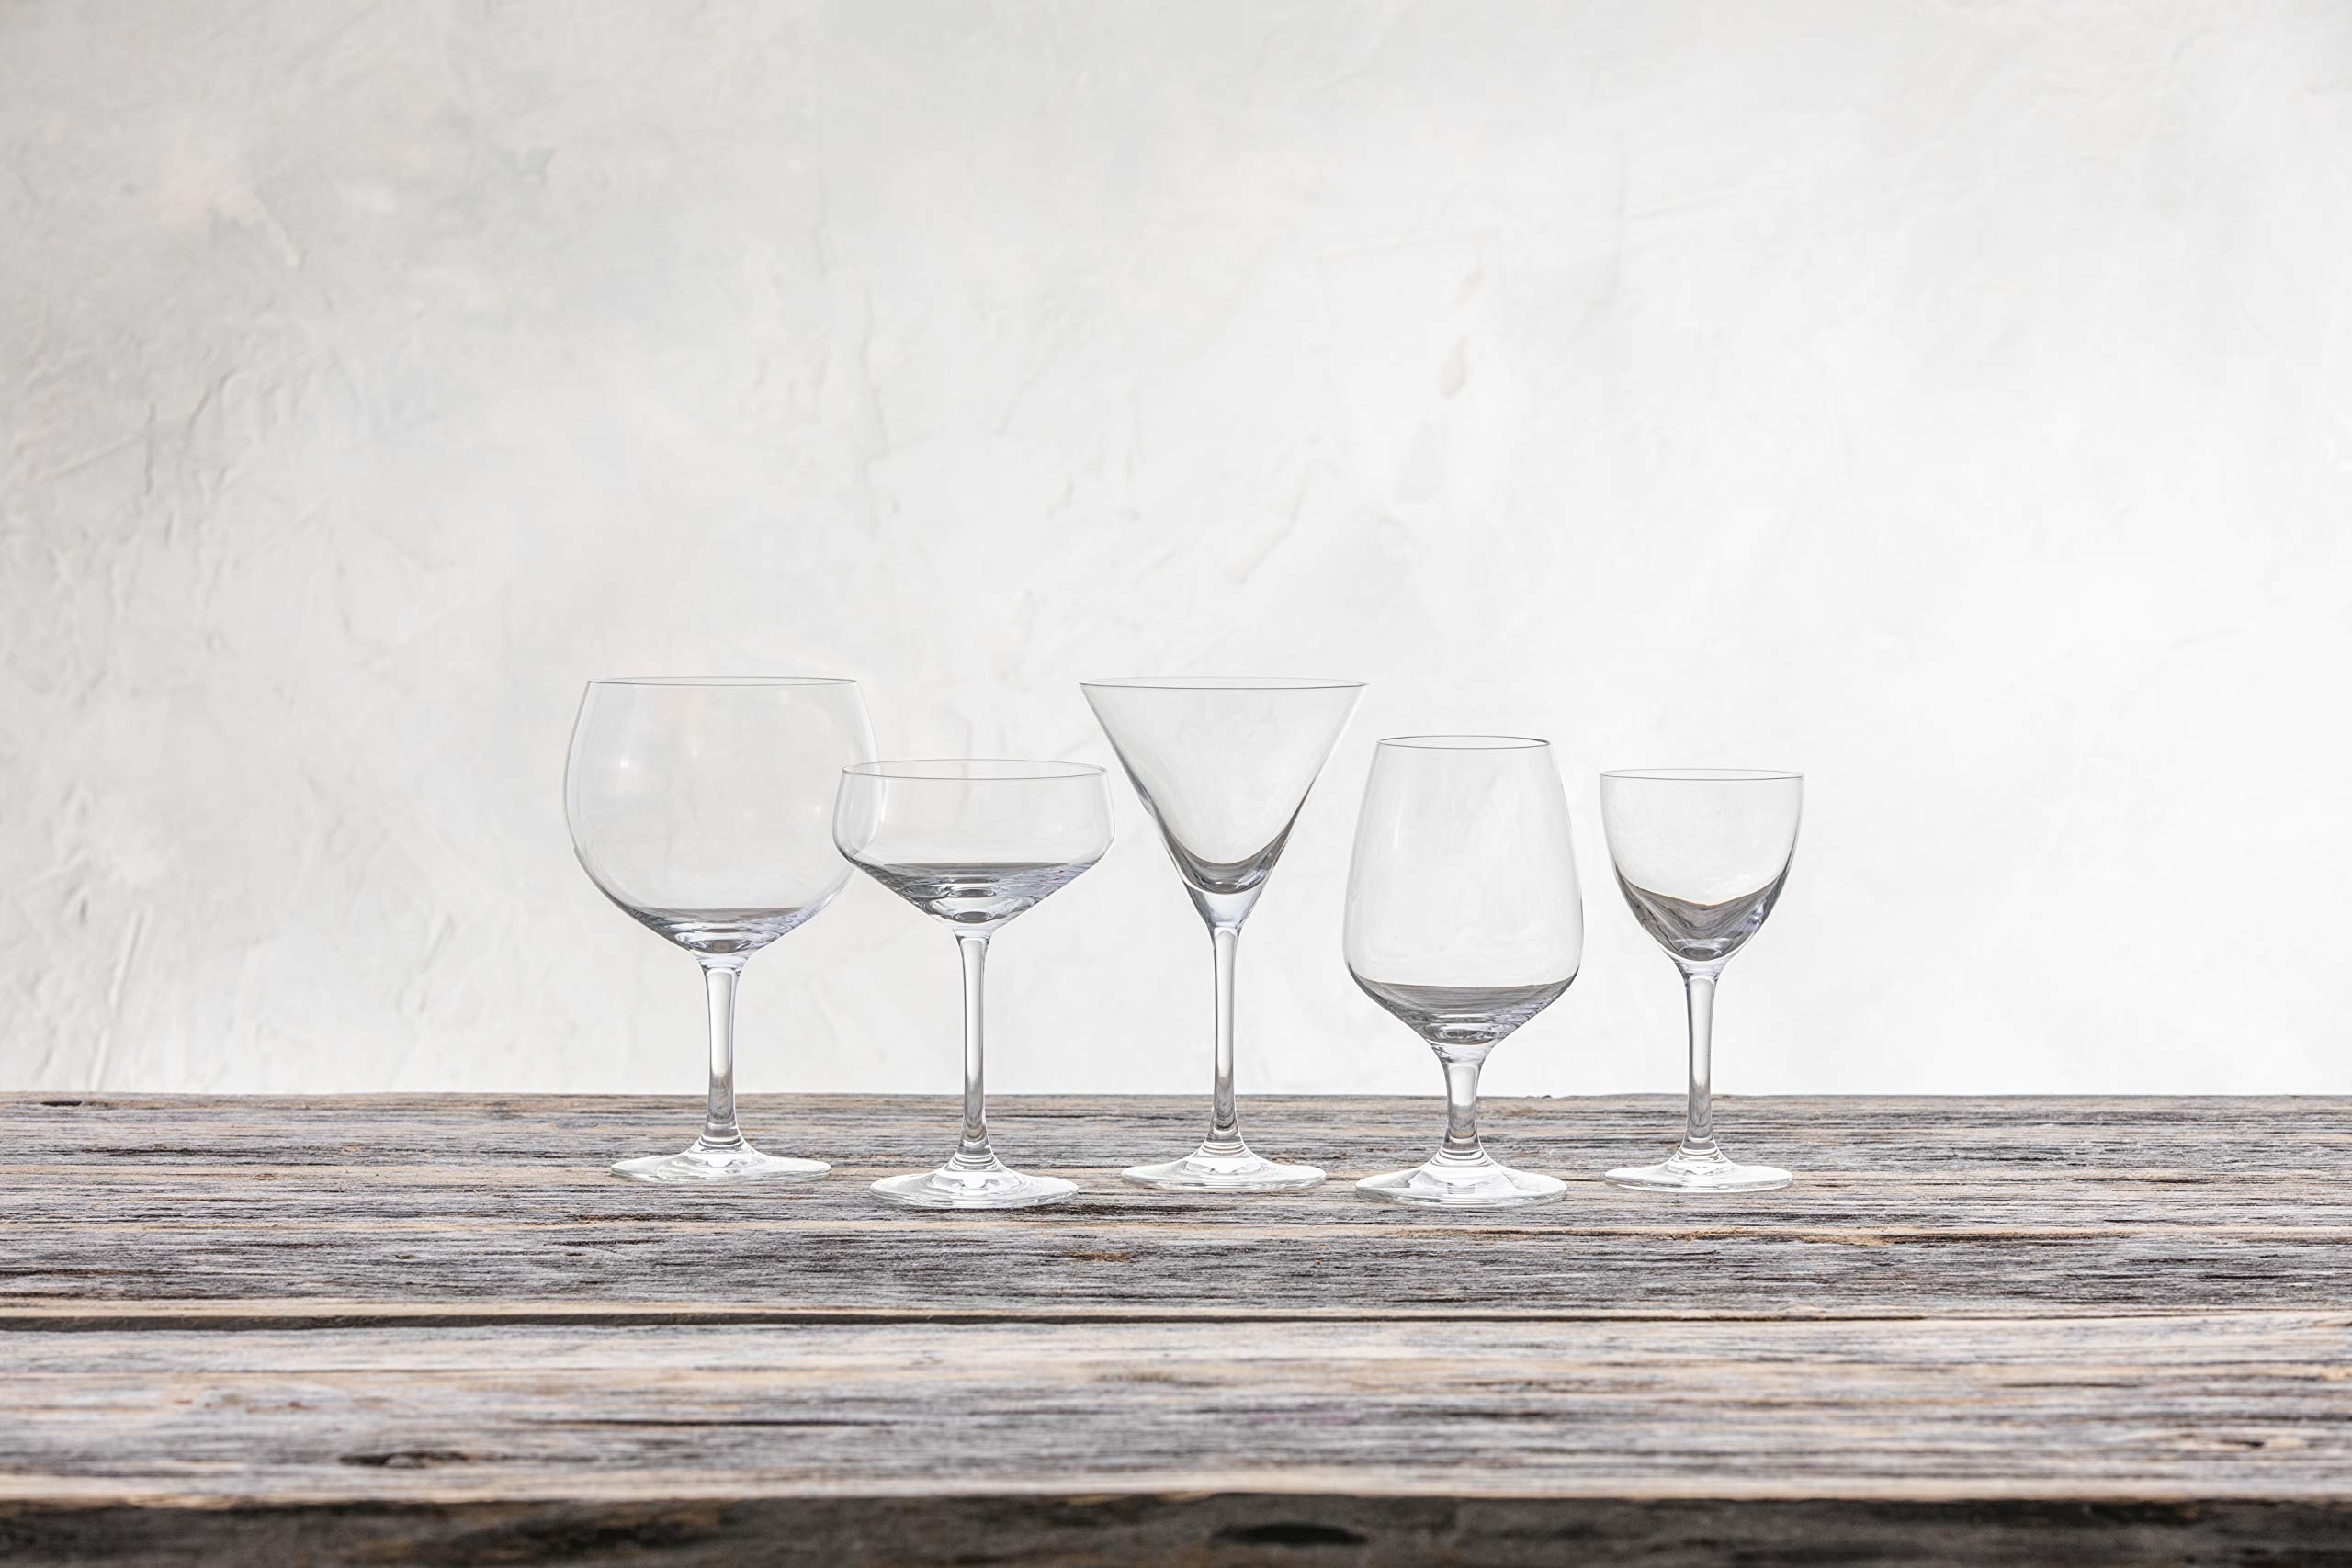 Schott Zwiesel Basic Bar Designed by World Renowned Mixologist Charles Schumann Tritan Crystal Glass, Traditional Martini Cocktail, 6.1-Ounce, Set of 6 by Schott Zwiesel (Image #4)